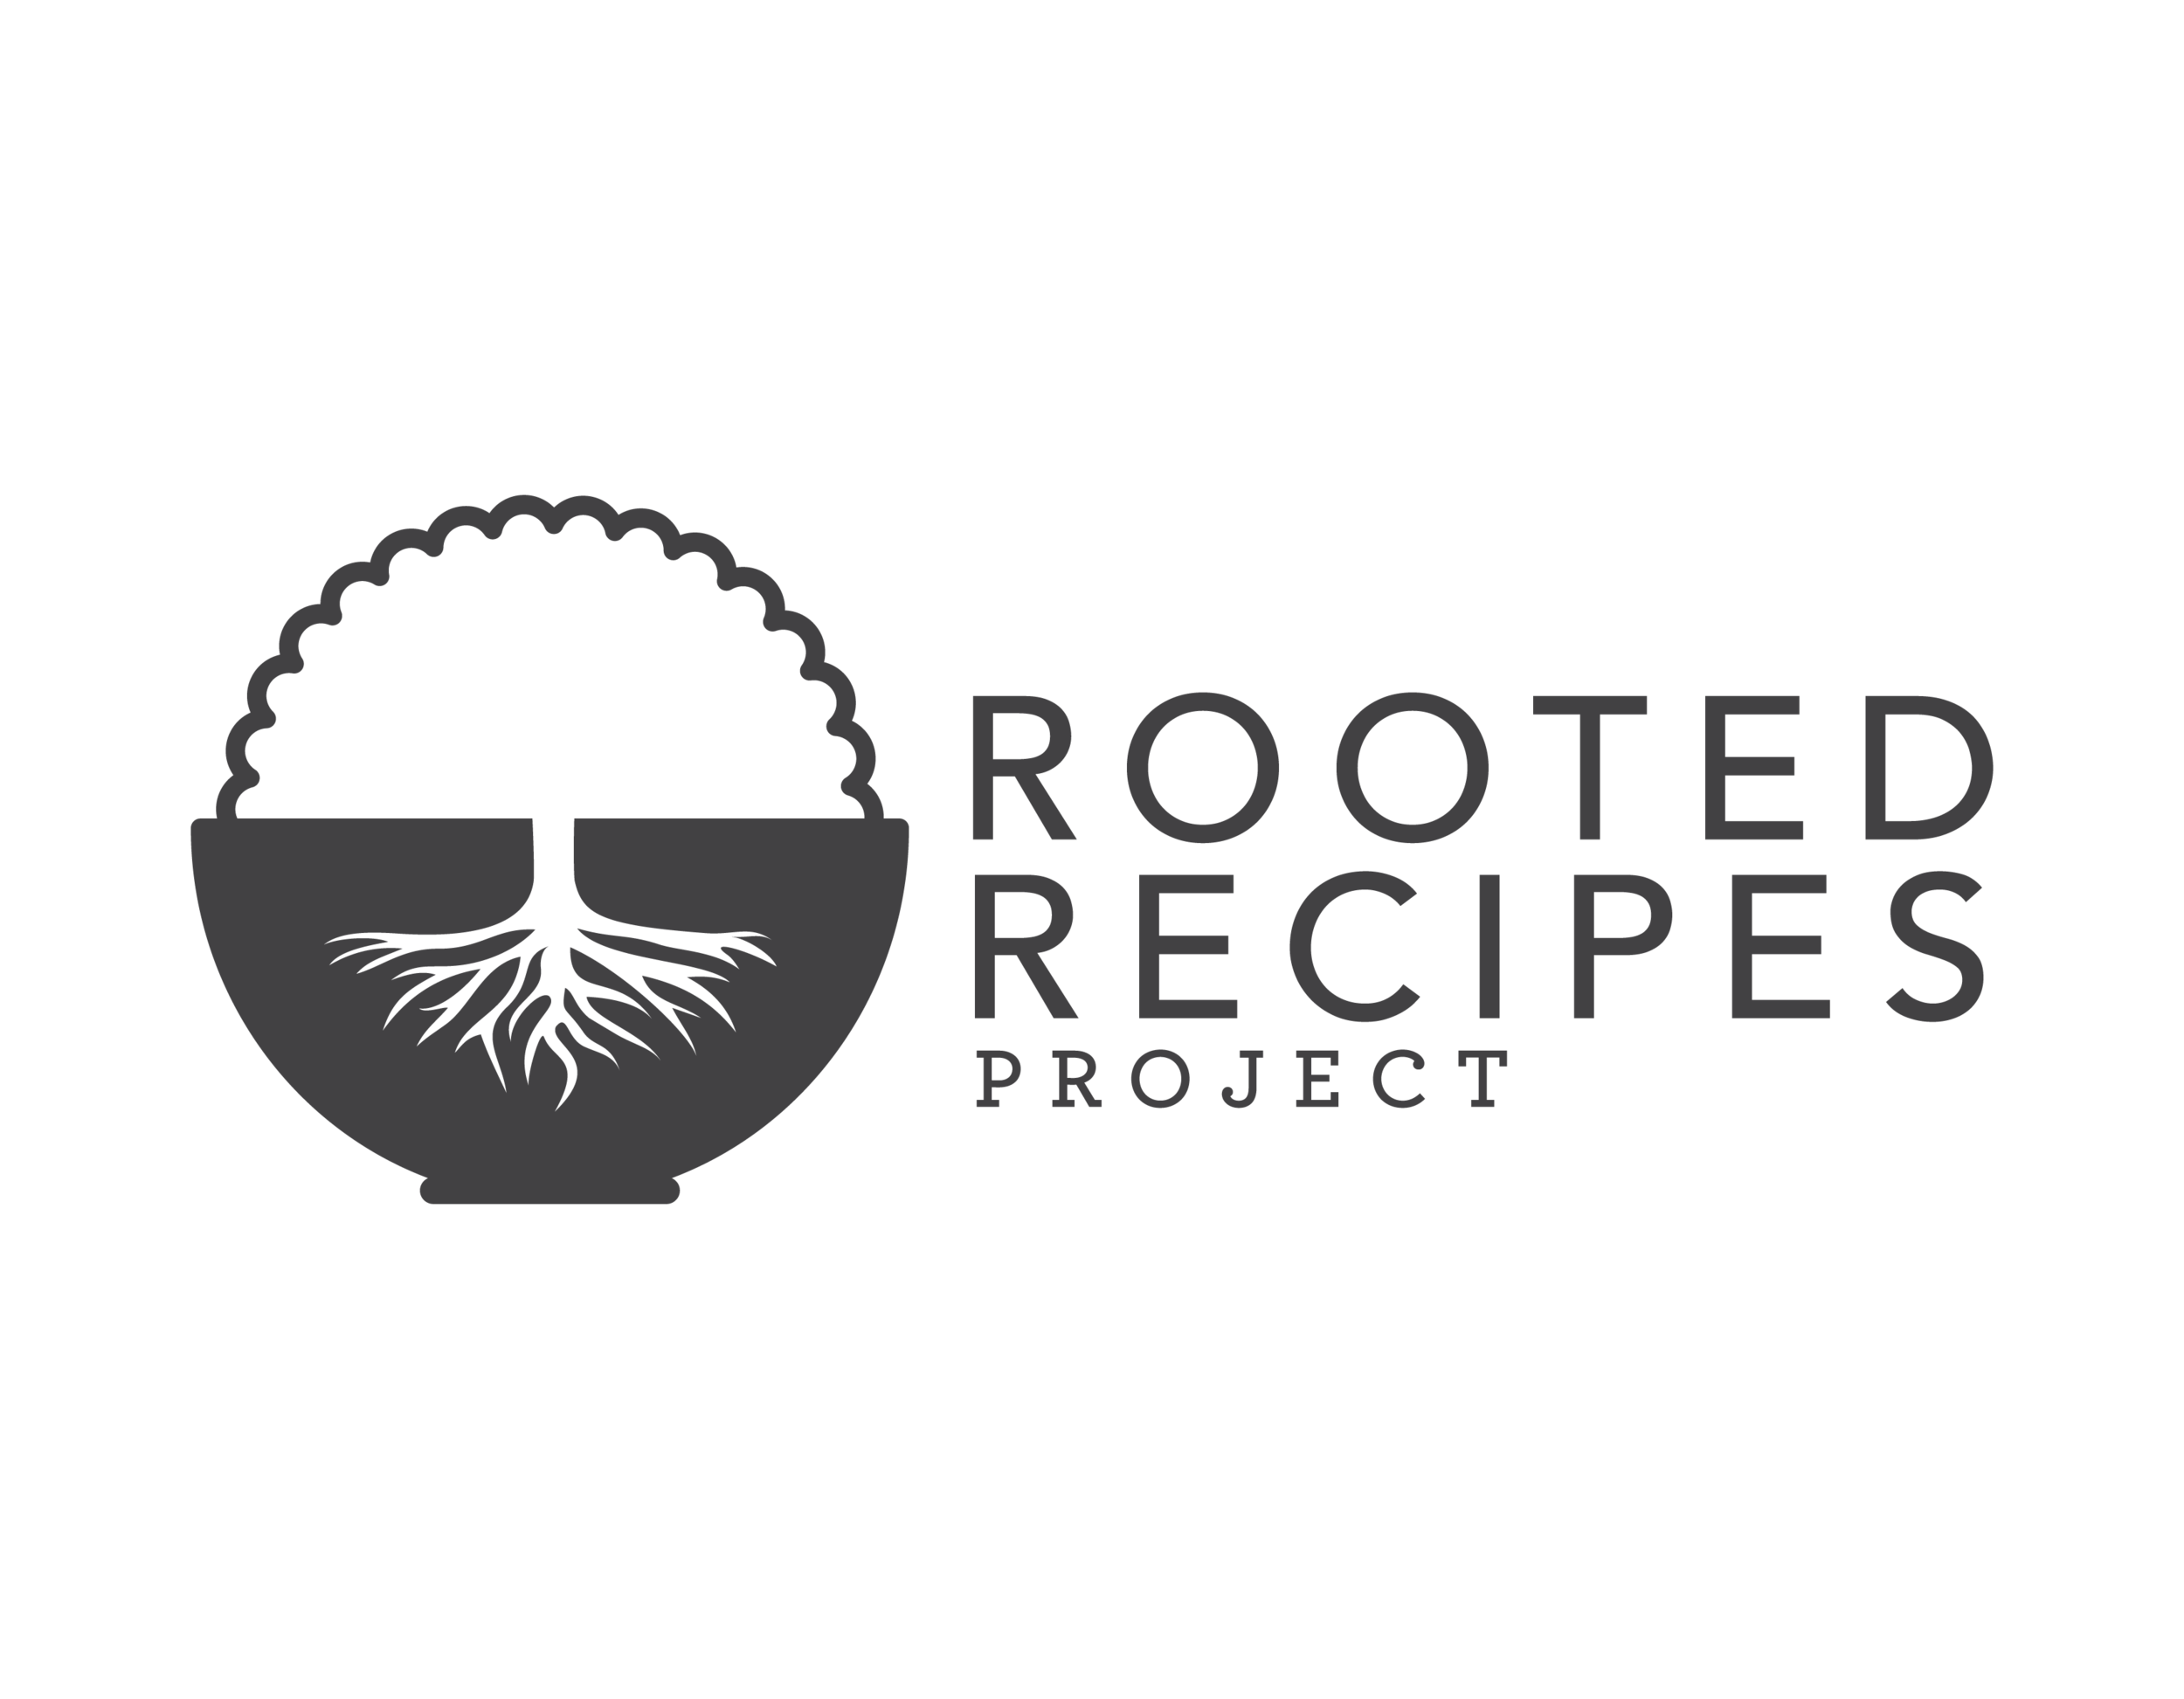 Rooted Recipes Project - Logo Design by Mark Penacerrada